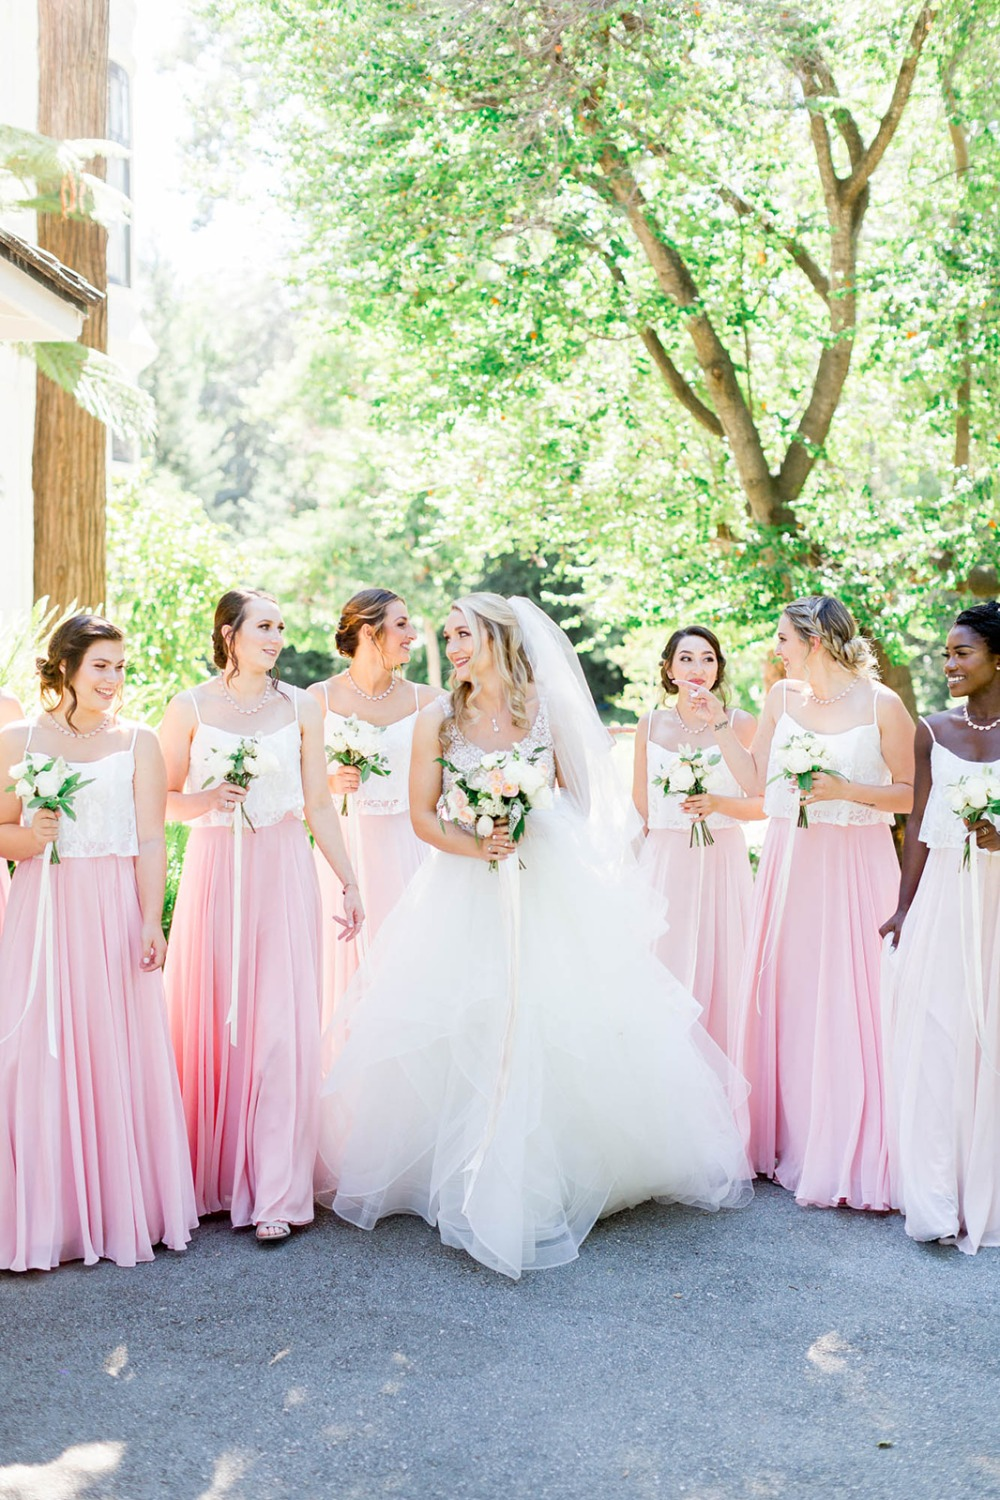 pink skirts and white cropped top bridesmaids